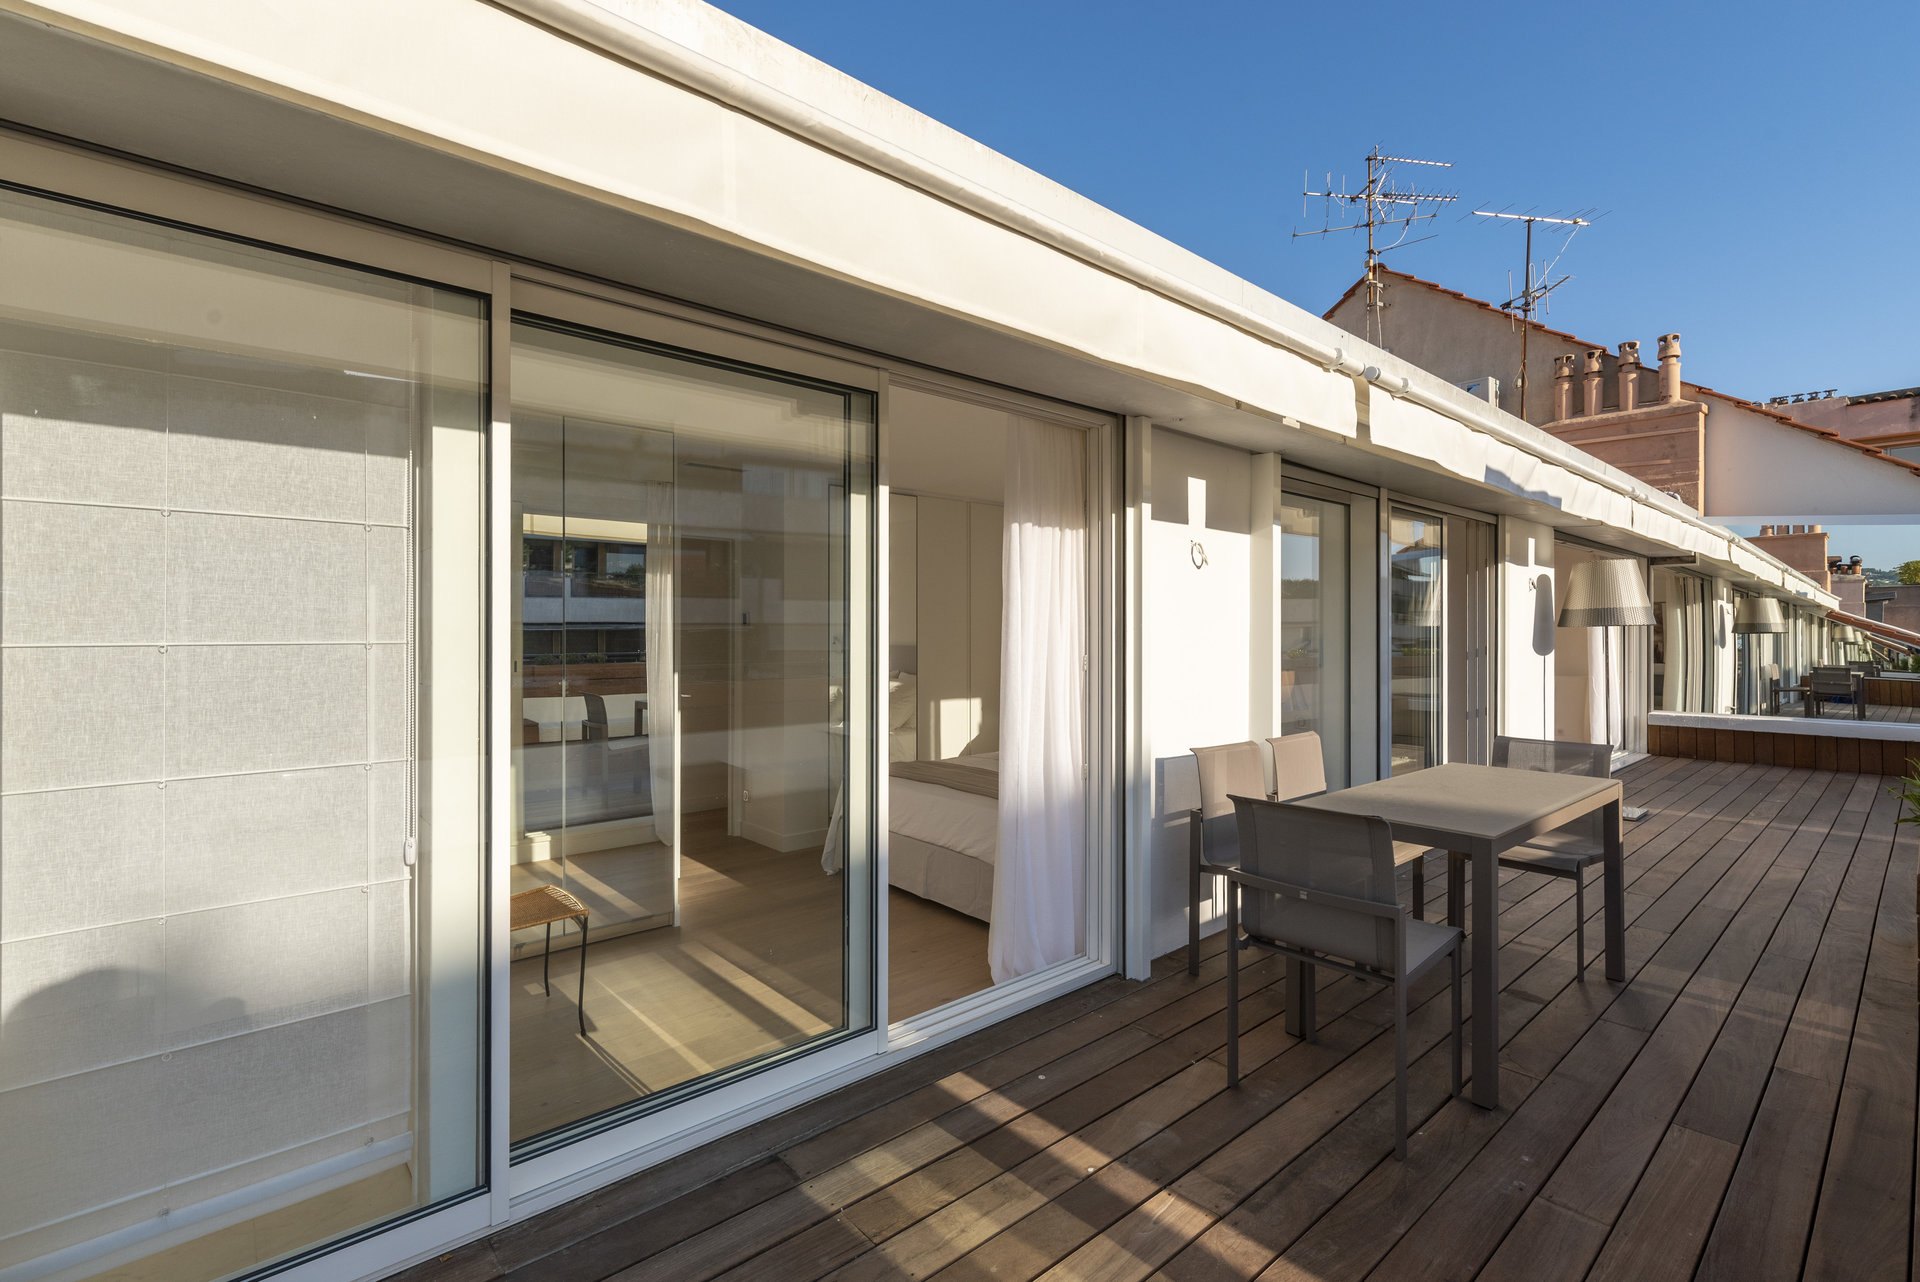 CANNES Arrière Croisette - Renovated penthouse for sale by CANNES AGENCY